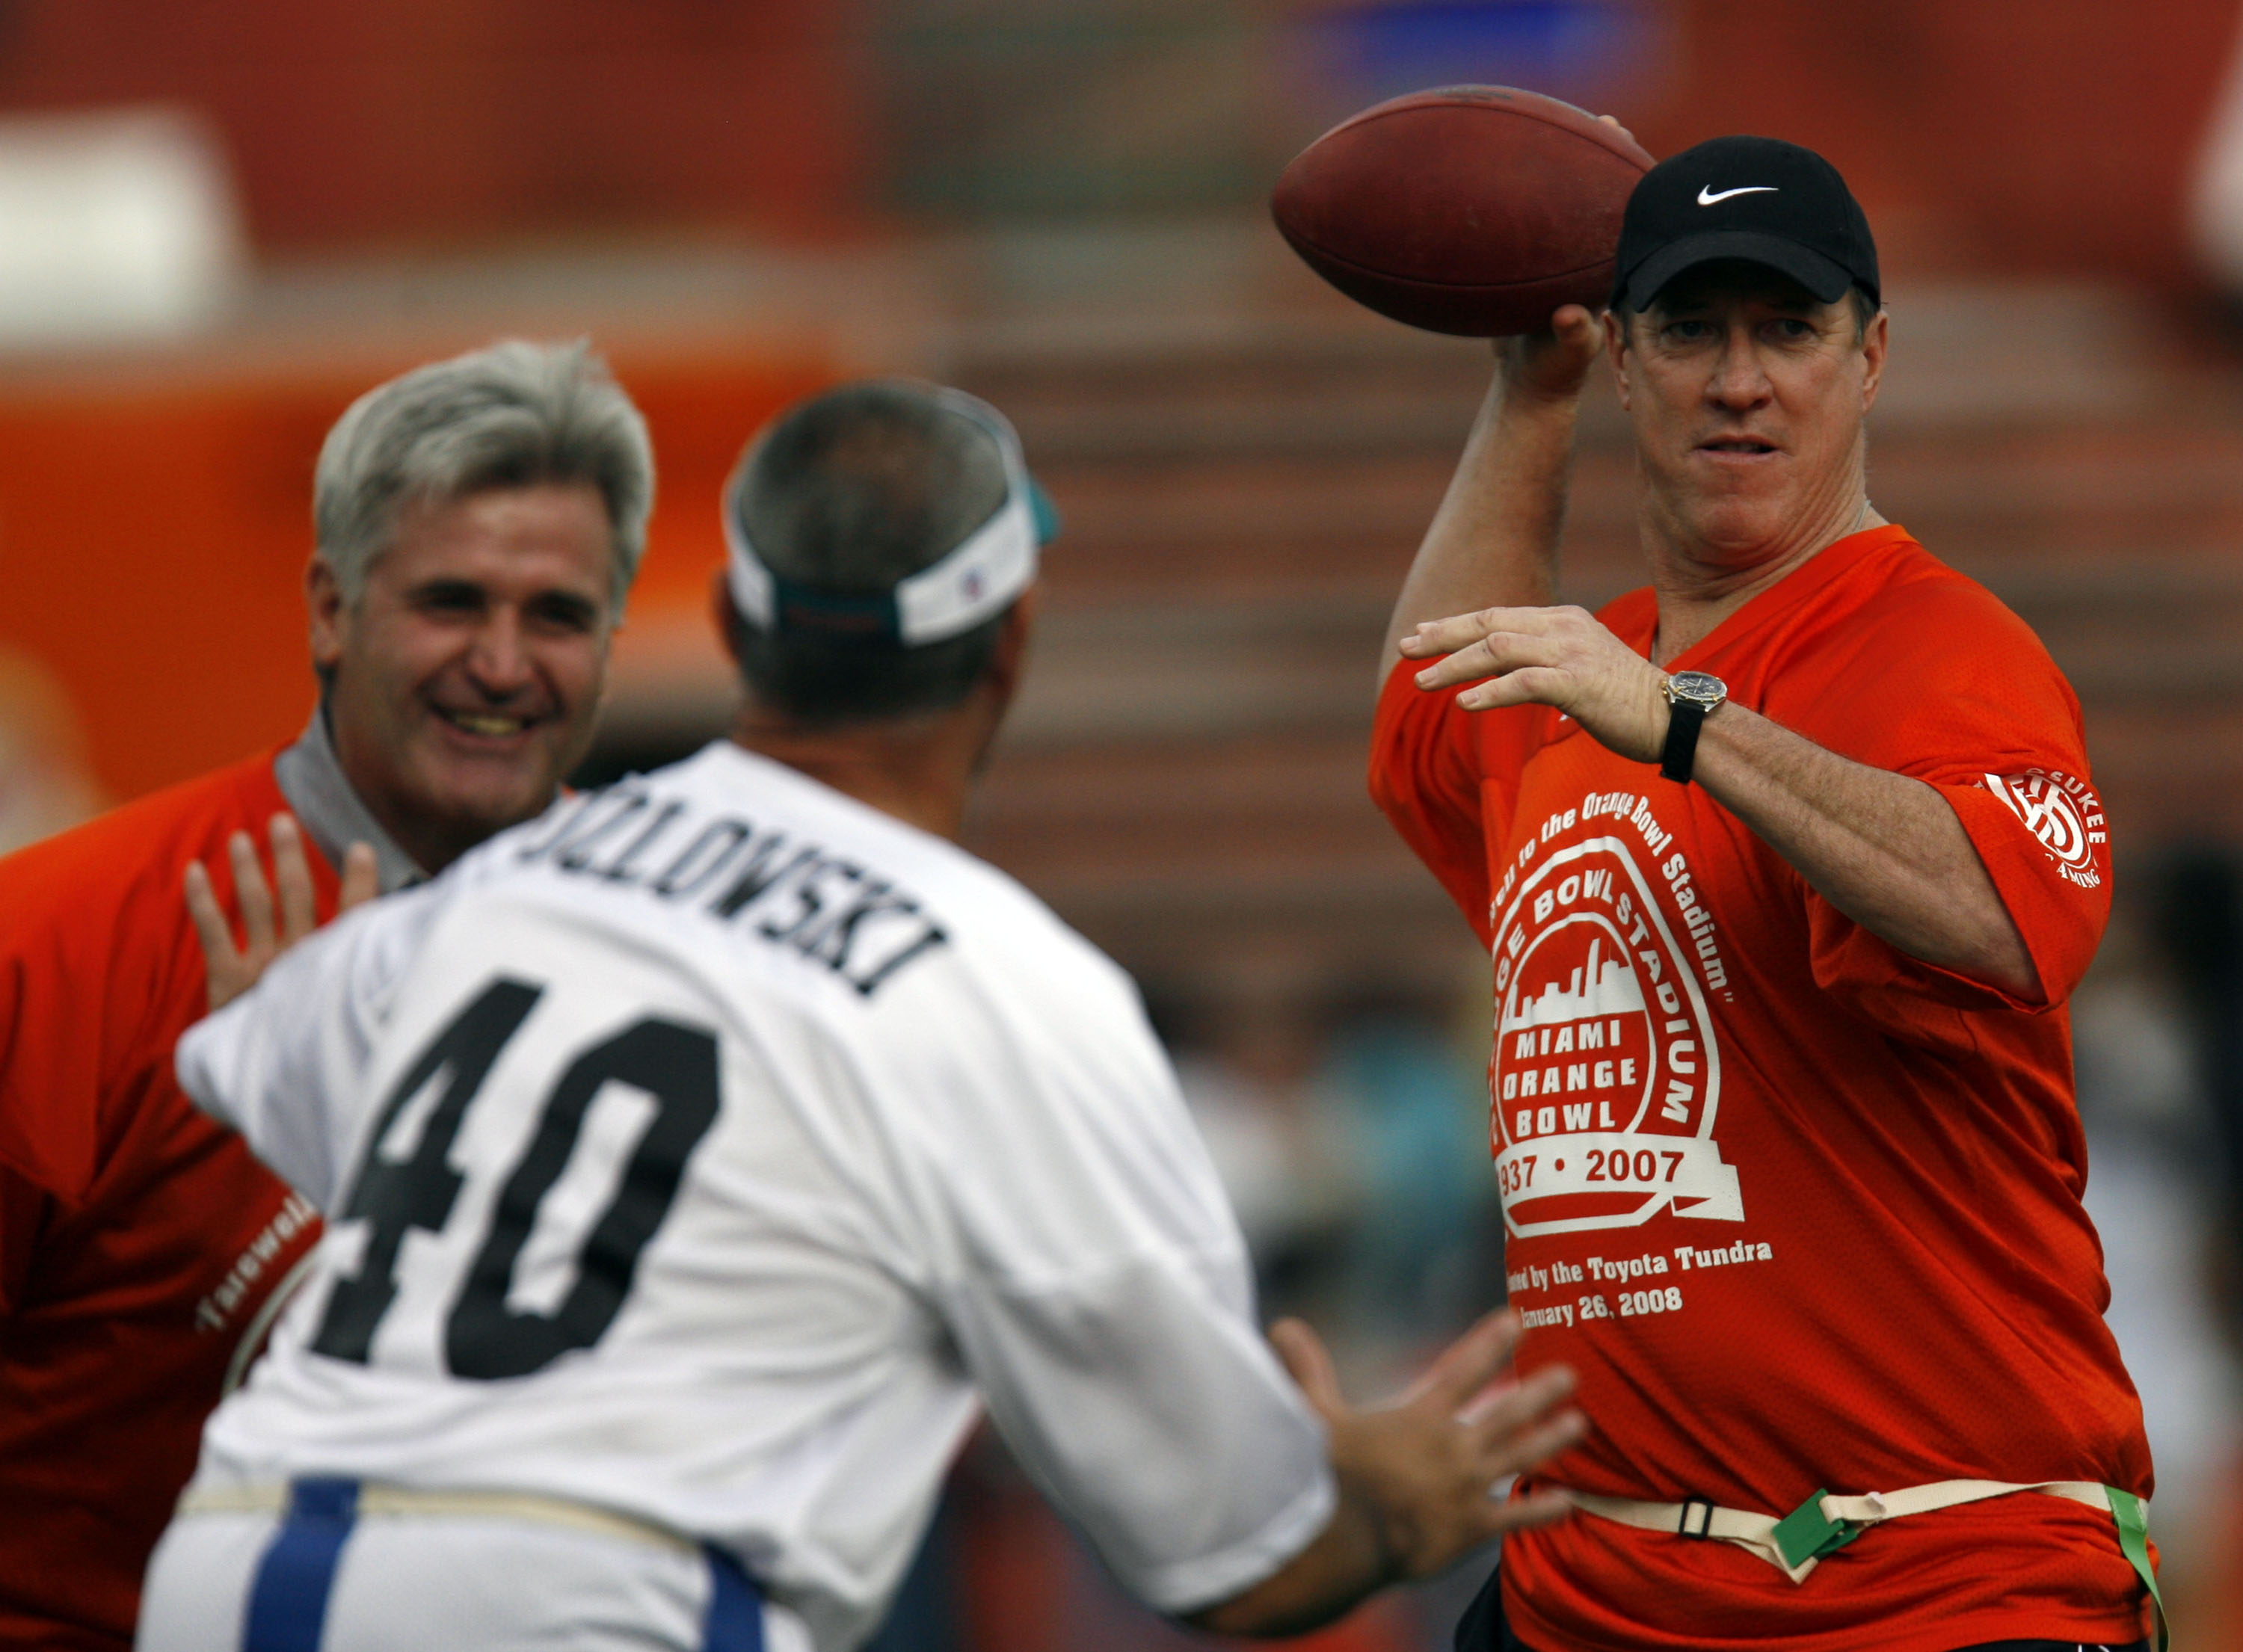 MIAMI, FL - JANUARY 26: Former University of Miami Hurricanes Quarterback Jim Kelly throws a pass during the final game at the Orange Bowl against the Miami Dolphins January 26, 2008 in Miami, Florida. This is the last game to be played in the Orange Bowl